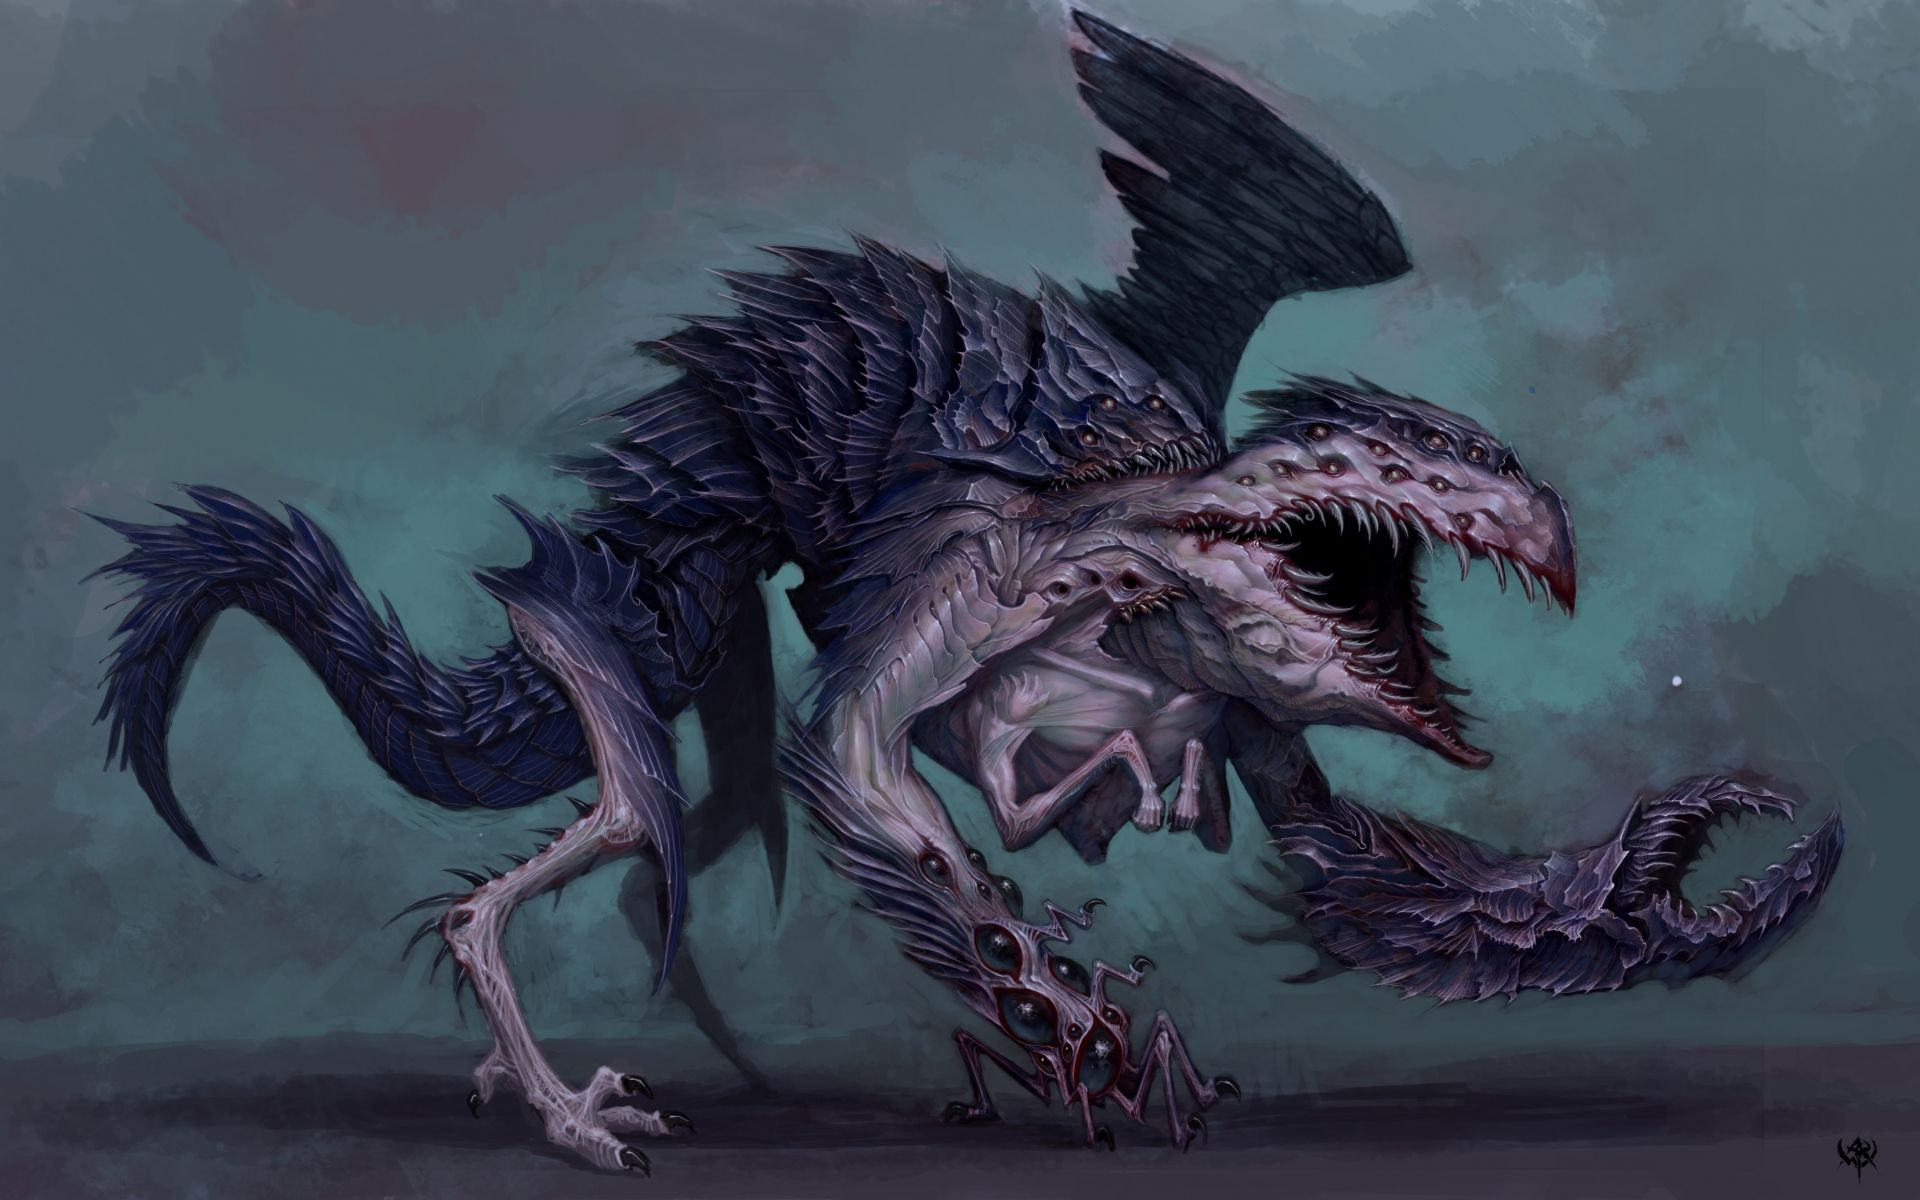 Sci fi monster art